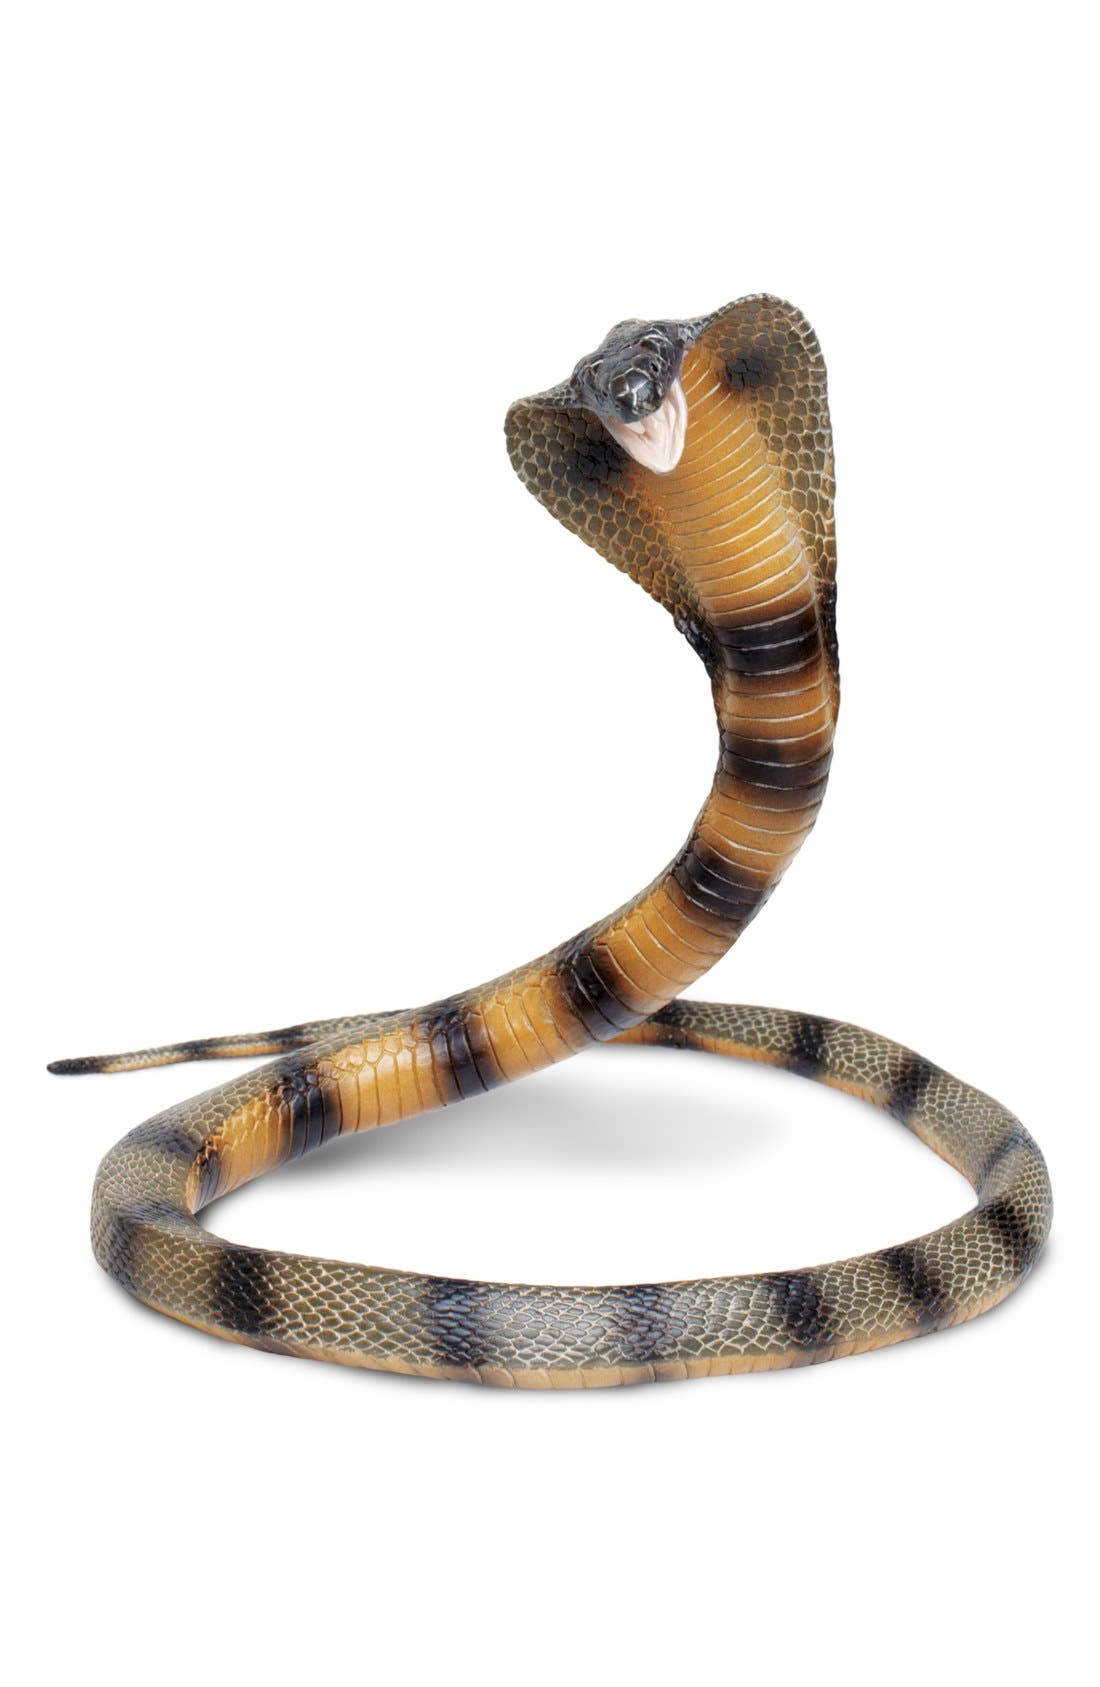 Cobra Snake Figurine,                         Main,                         color, 999